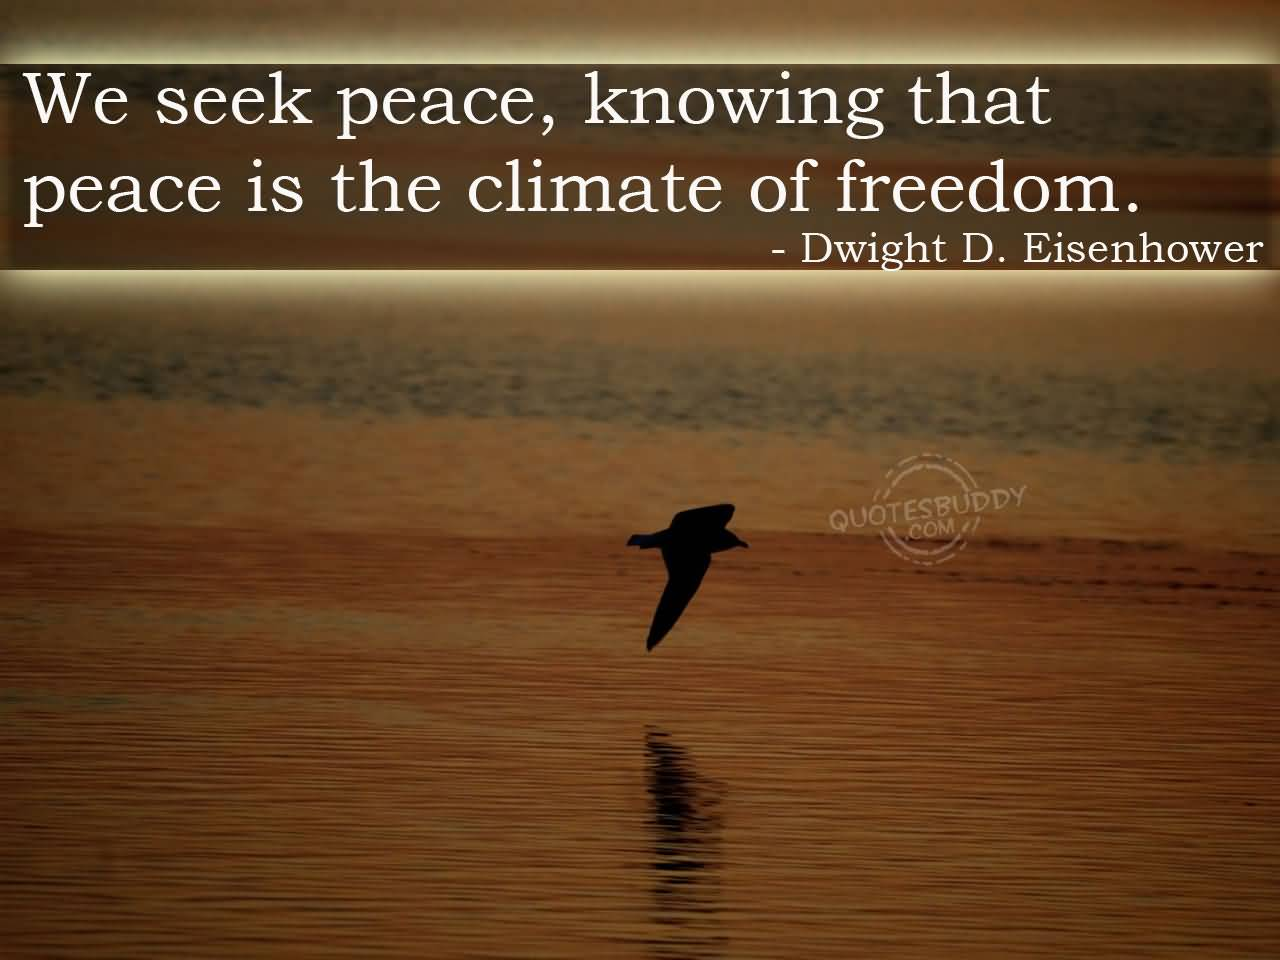 Freedom sayings we seek peace knowing that peace is the climate of freedom